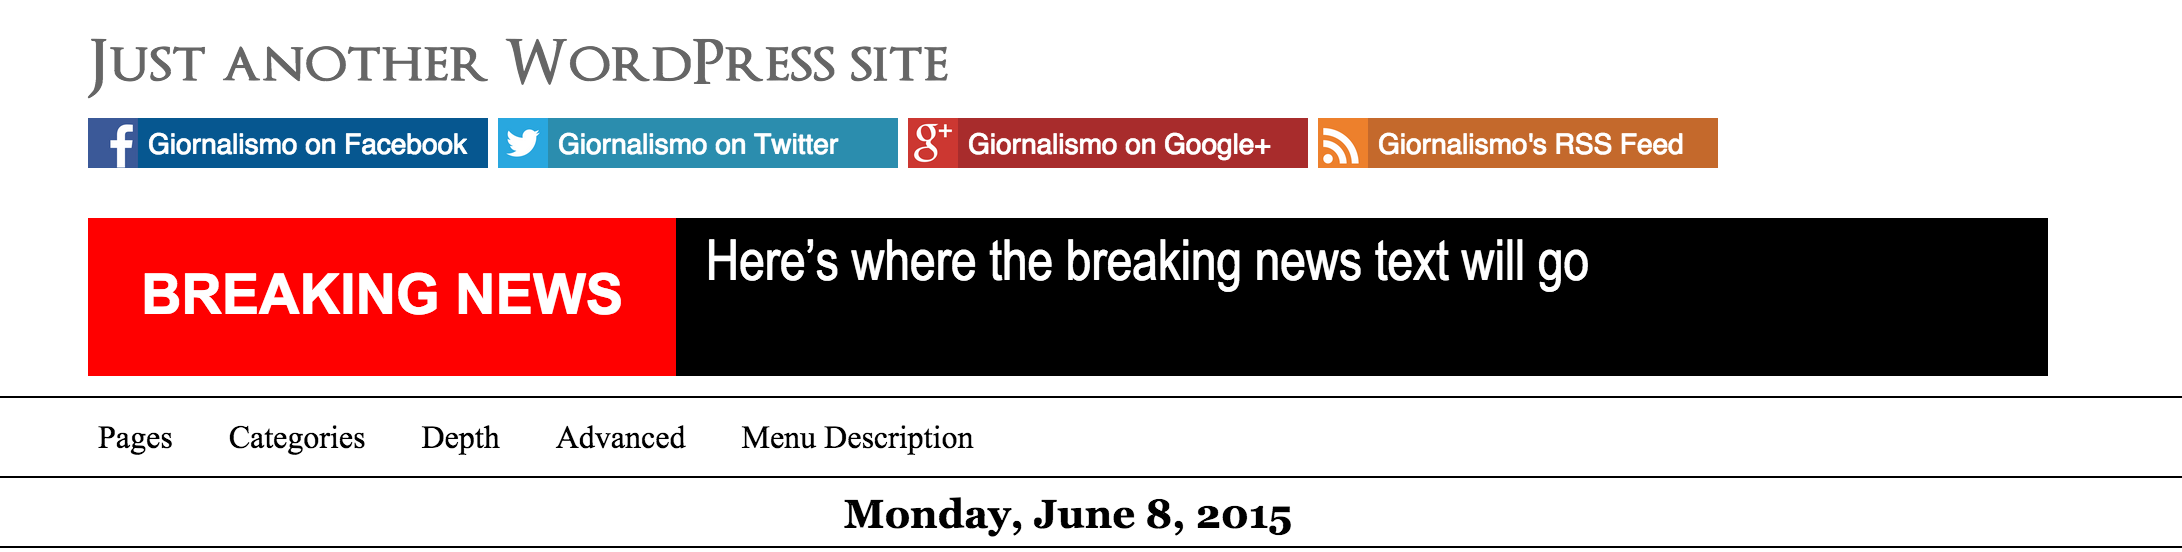 The breaking news banner in action on the web site.